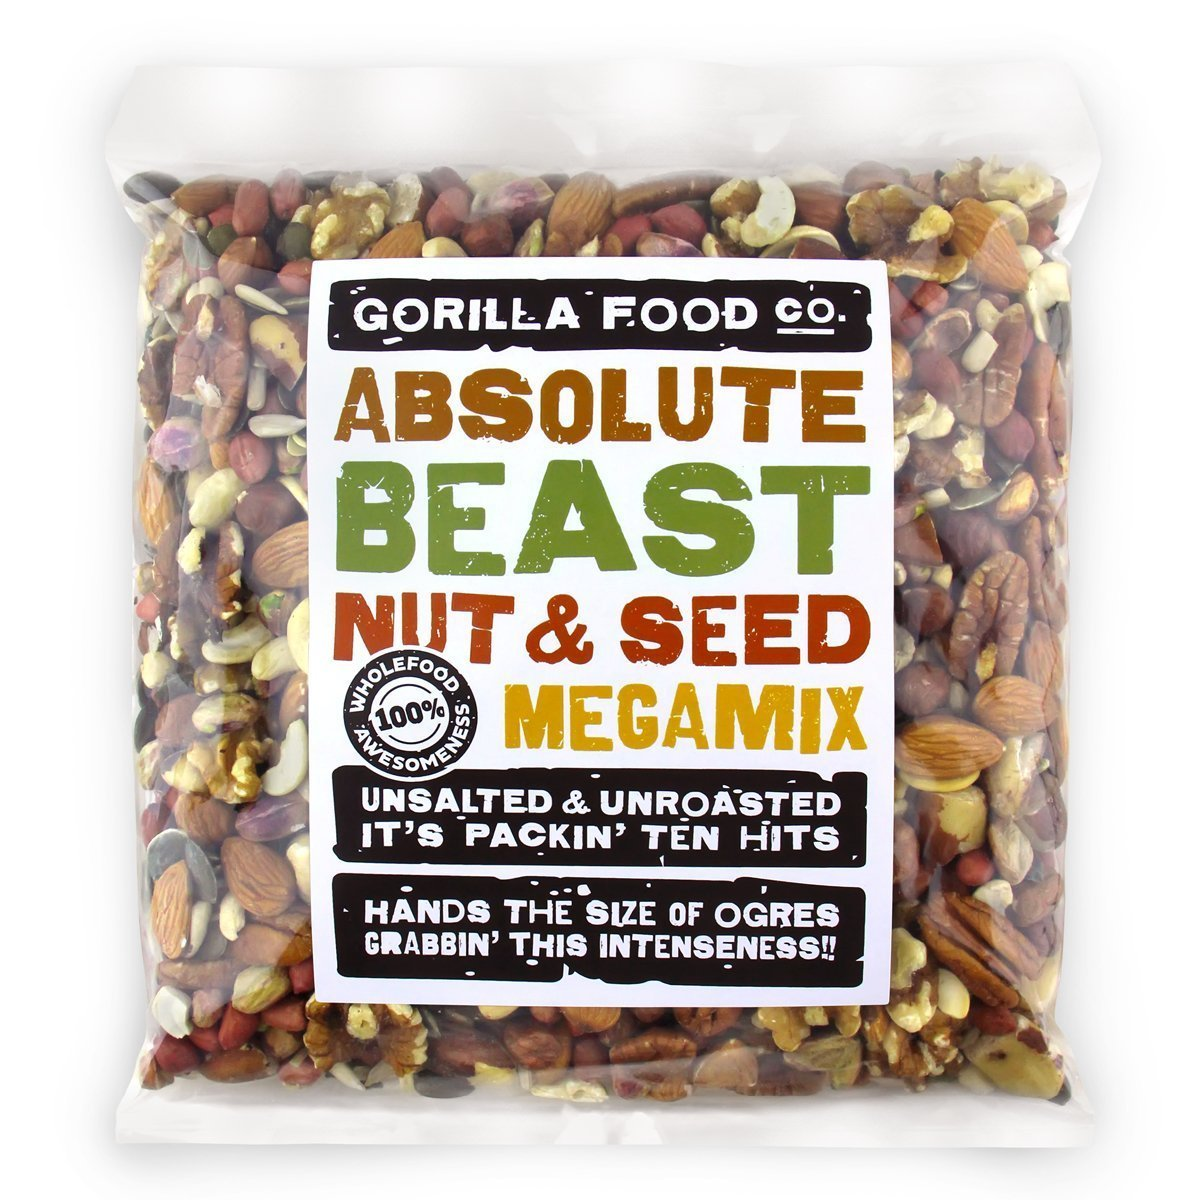 Gorilla Food Co. Absolute Beast (IMPROVED!) Unsalted Mixed Nuts and Seeds Raw Superfoods Megamix, Trail Mix, Vegan, Paleo - 2 Pound Resealable Bag